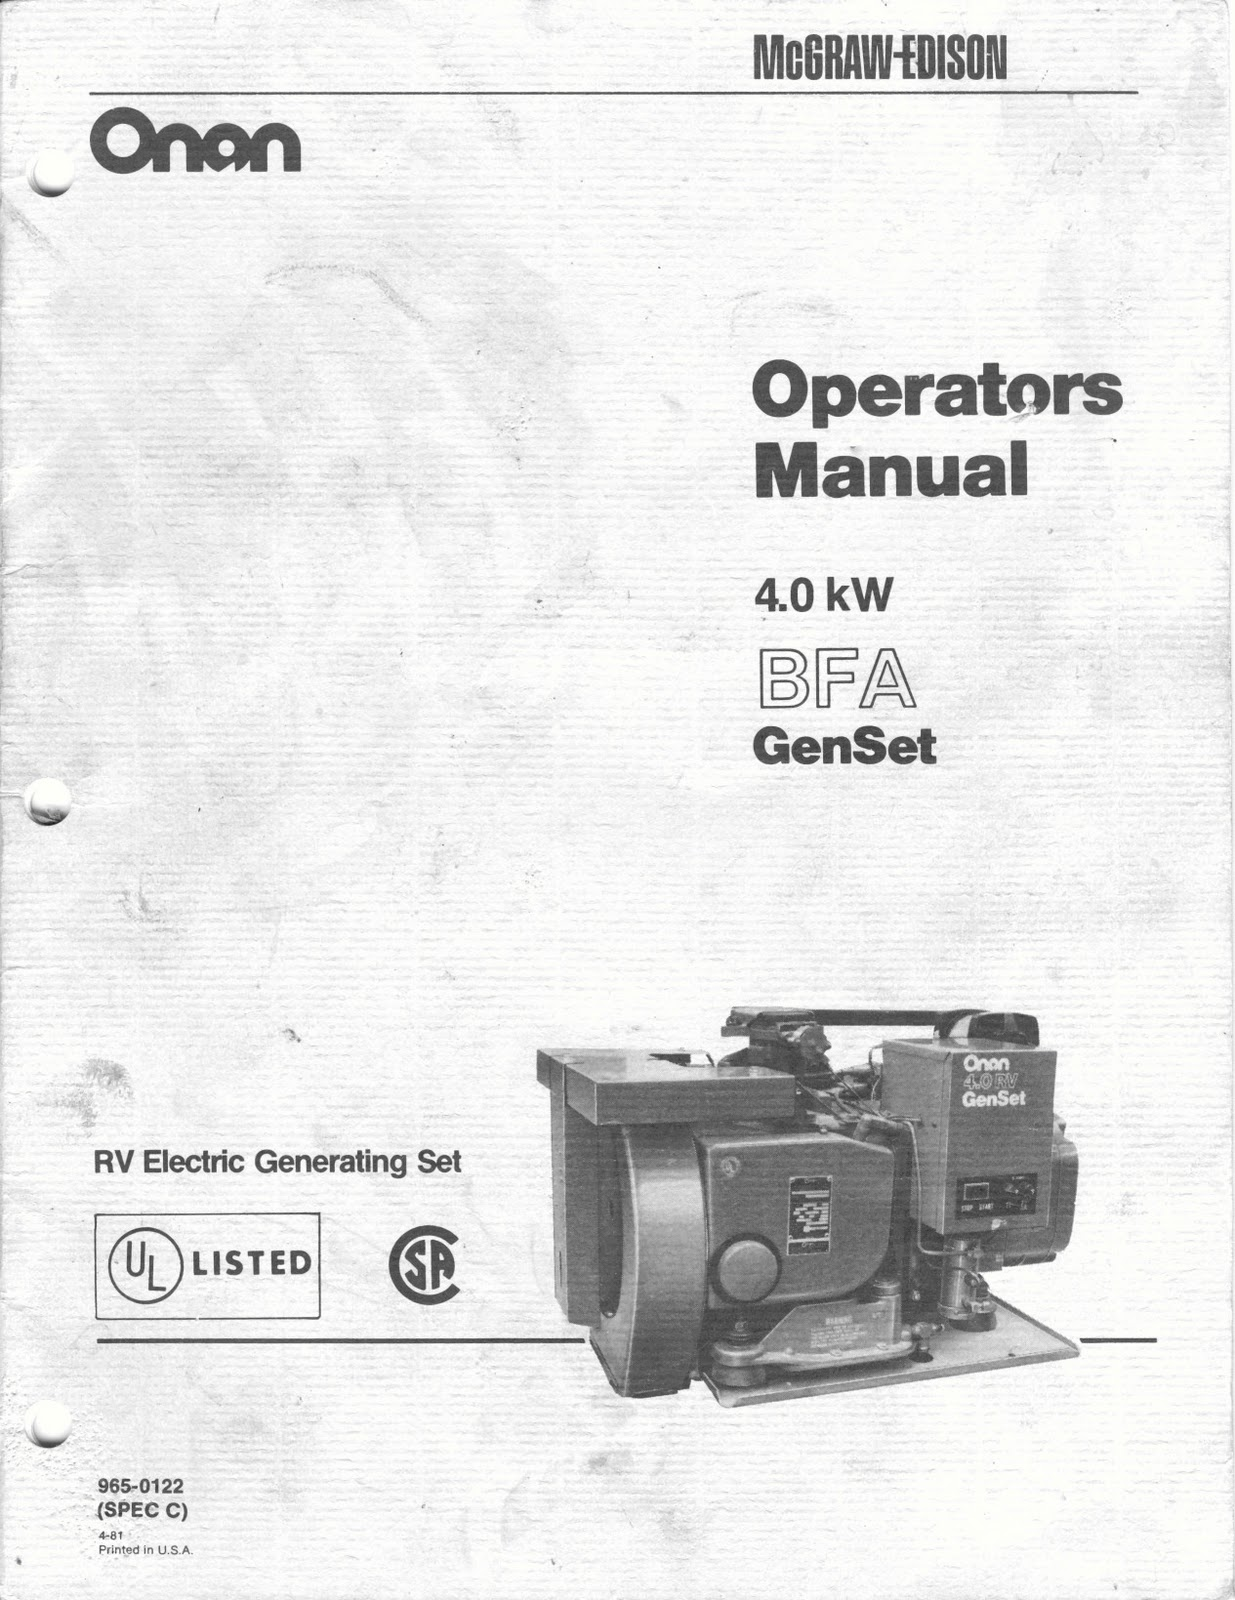 medium resolution of onan 4 0 kw bfa genset operators manual